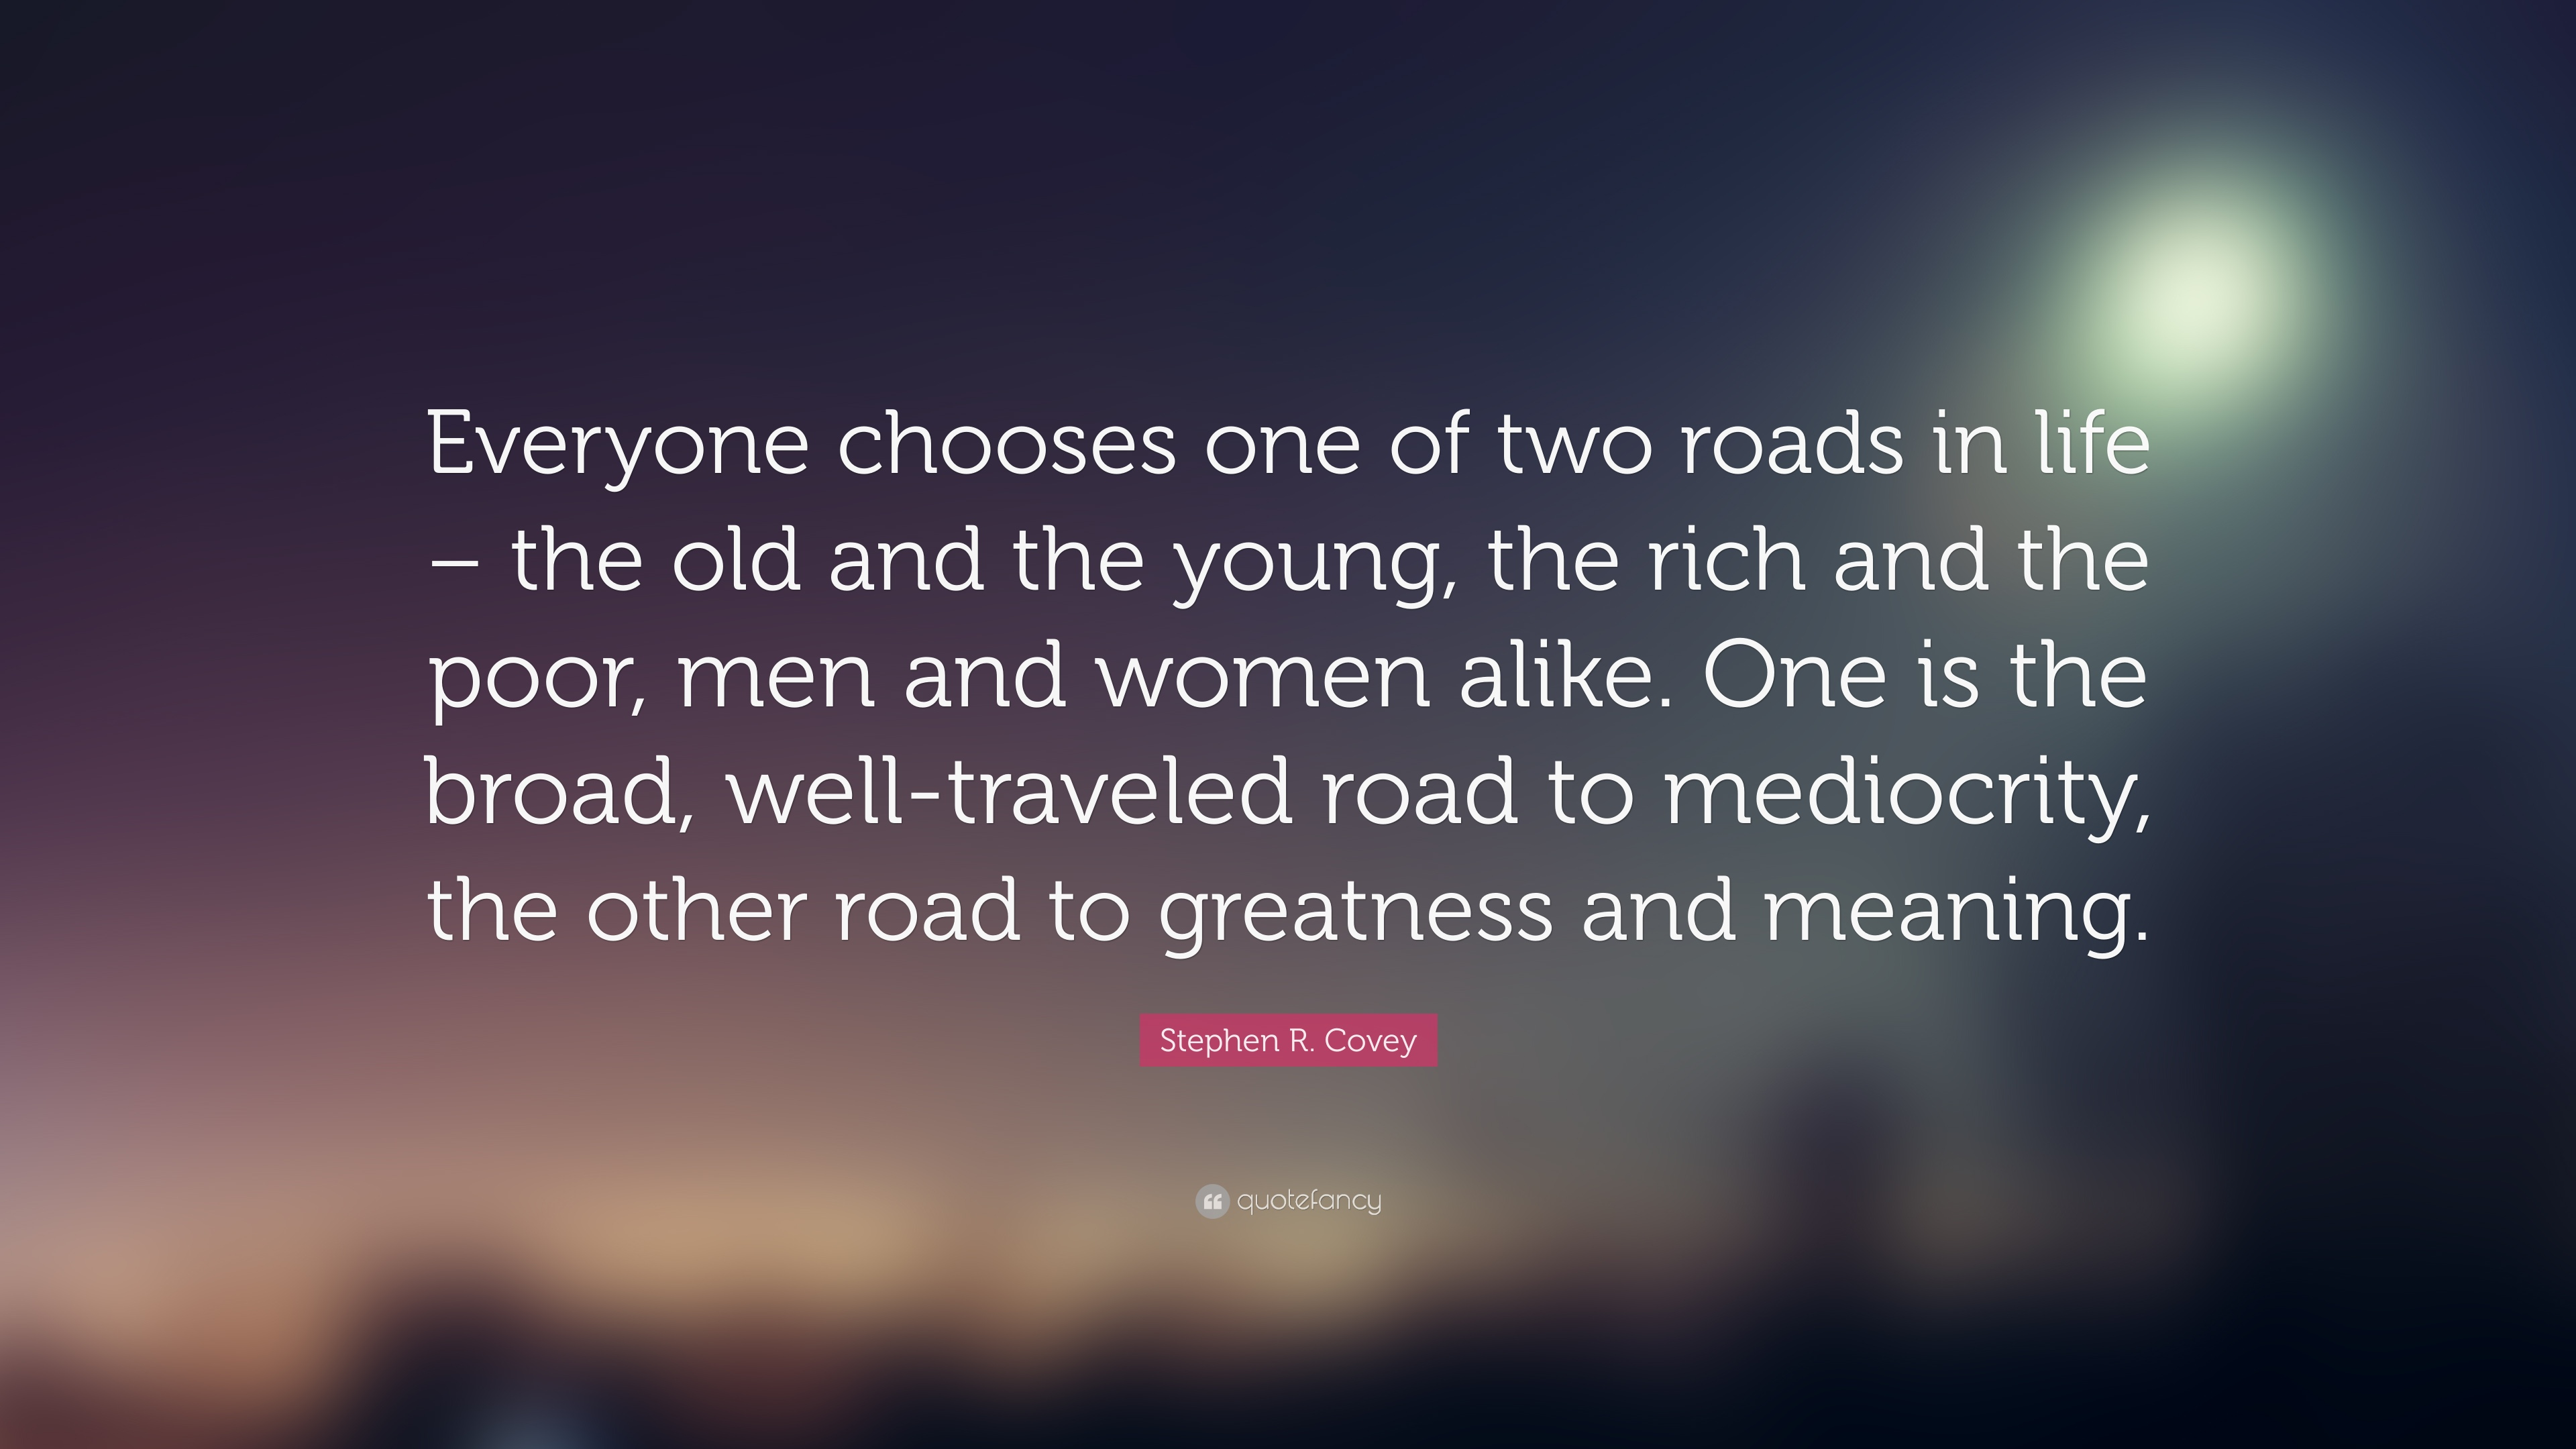 Stephen R Covey Quote Everyone Chooses One Of Two Roads In Life